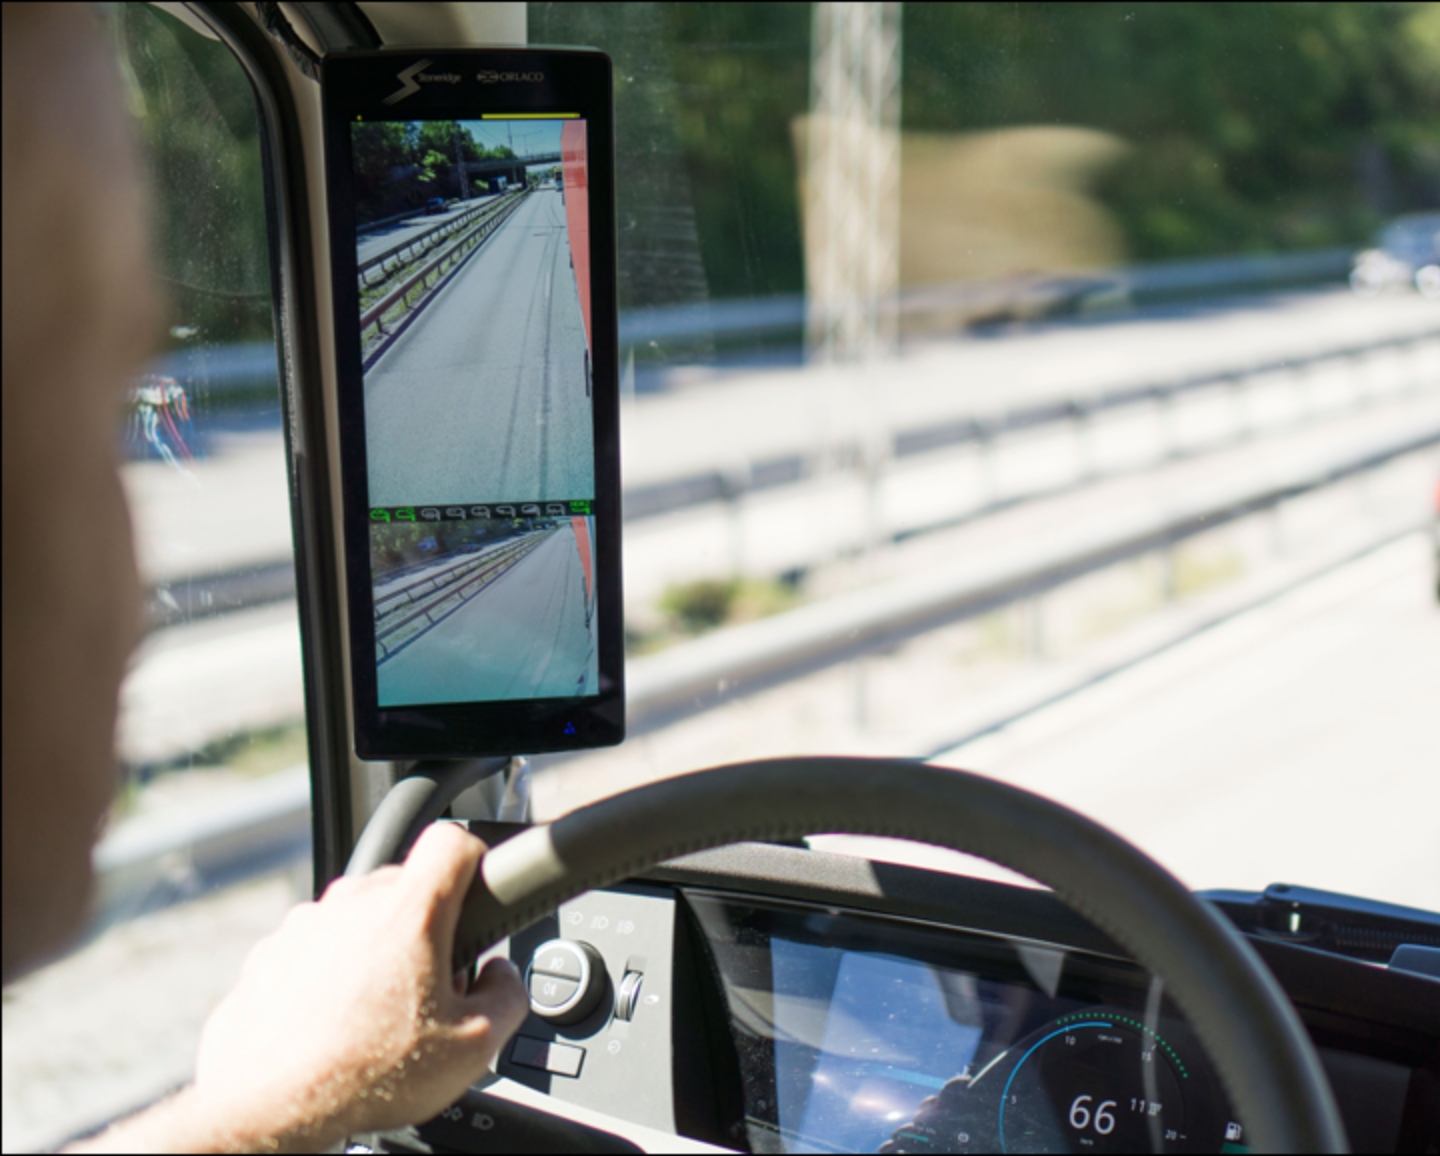 Stoneridge Pushes Fmcsa To Allow Cameras To Replace Mirrors